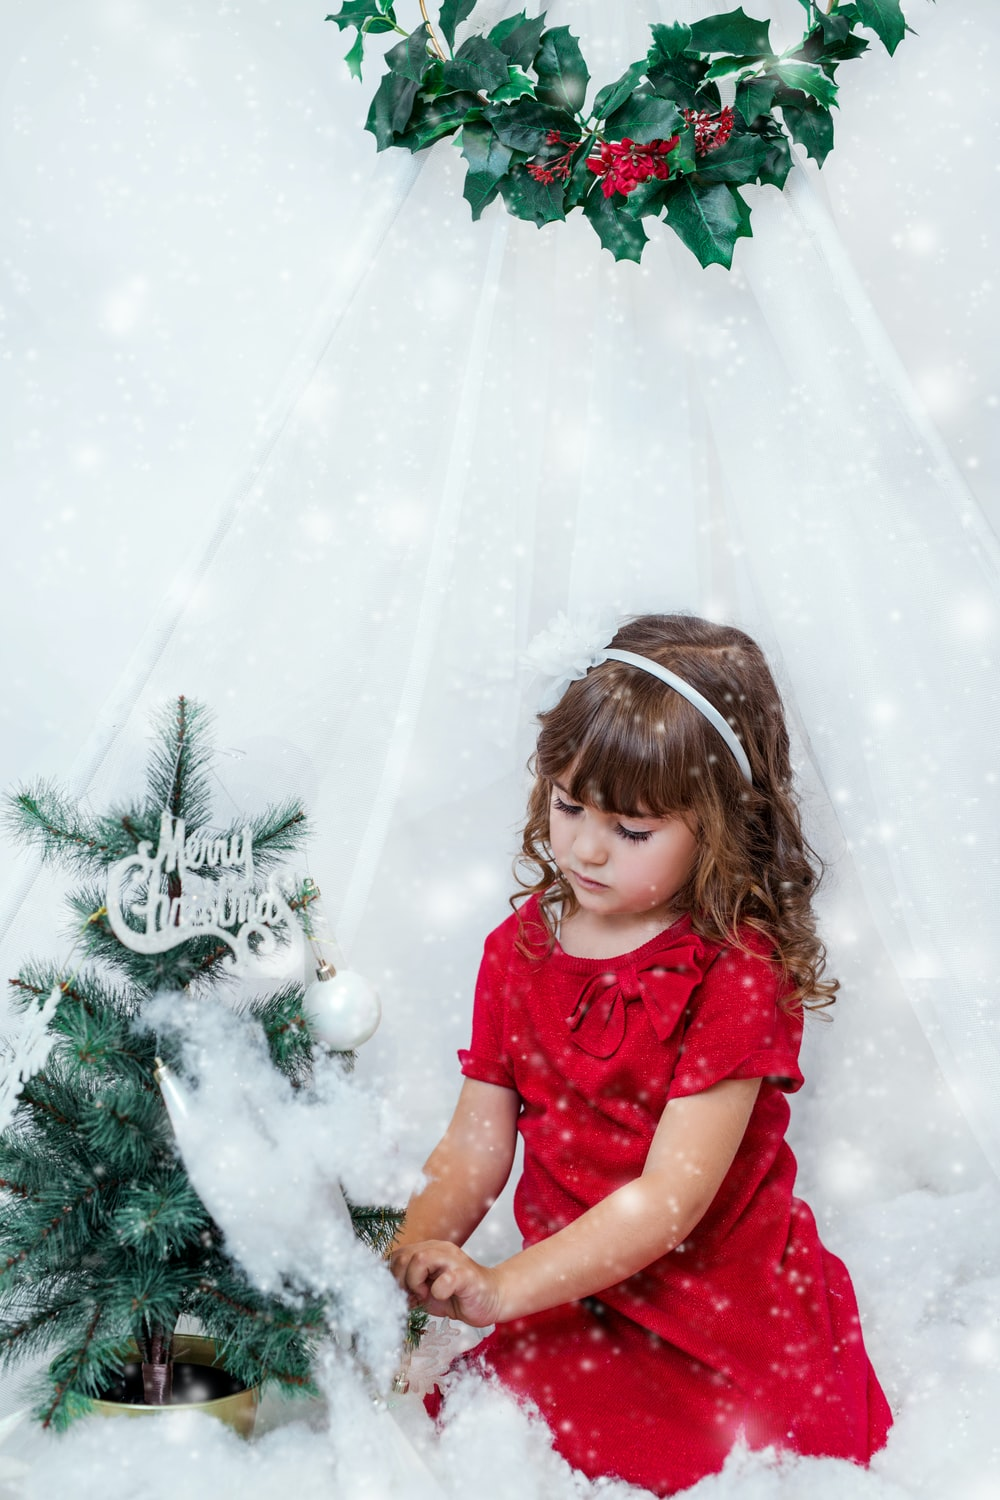 girl wearing red shirt decorating Christmas tree